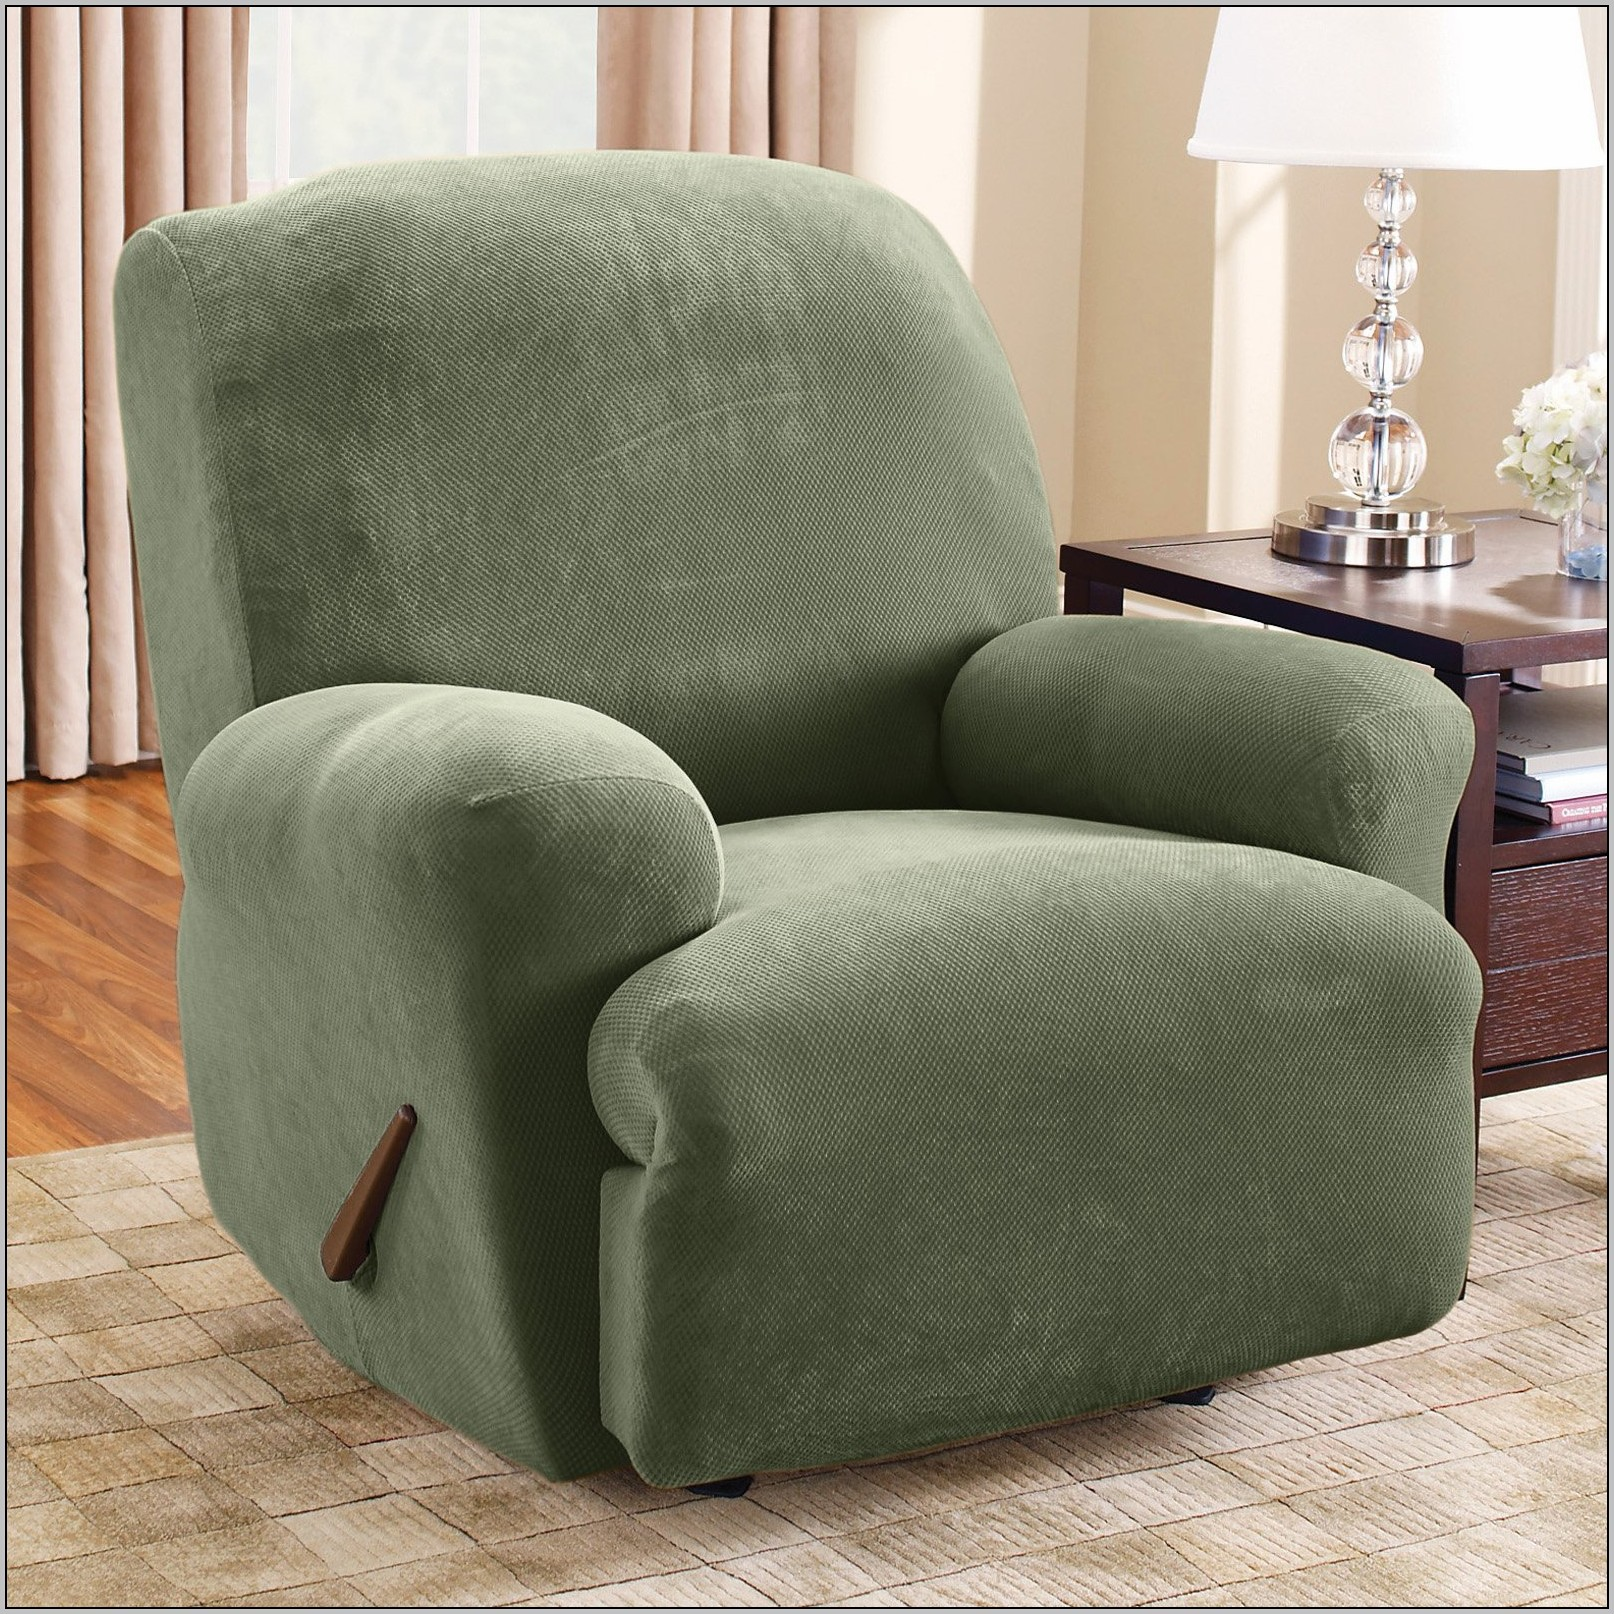 Wing Chair Slipcover | Slipcover Sofa | Oversized Chair Slipcover